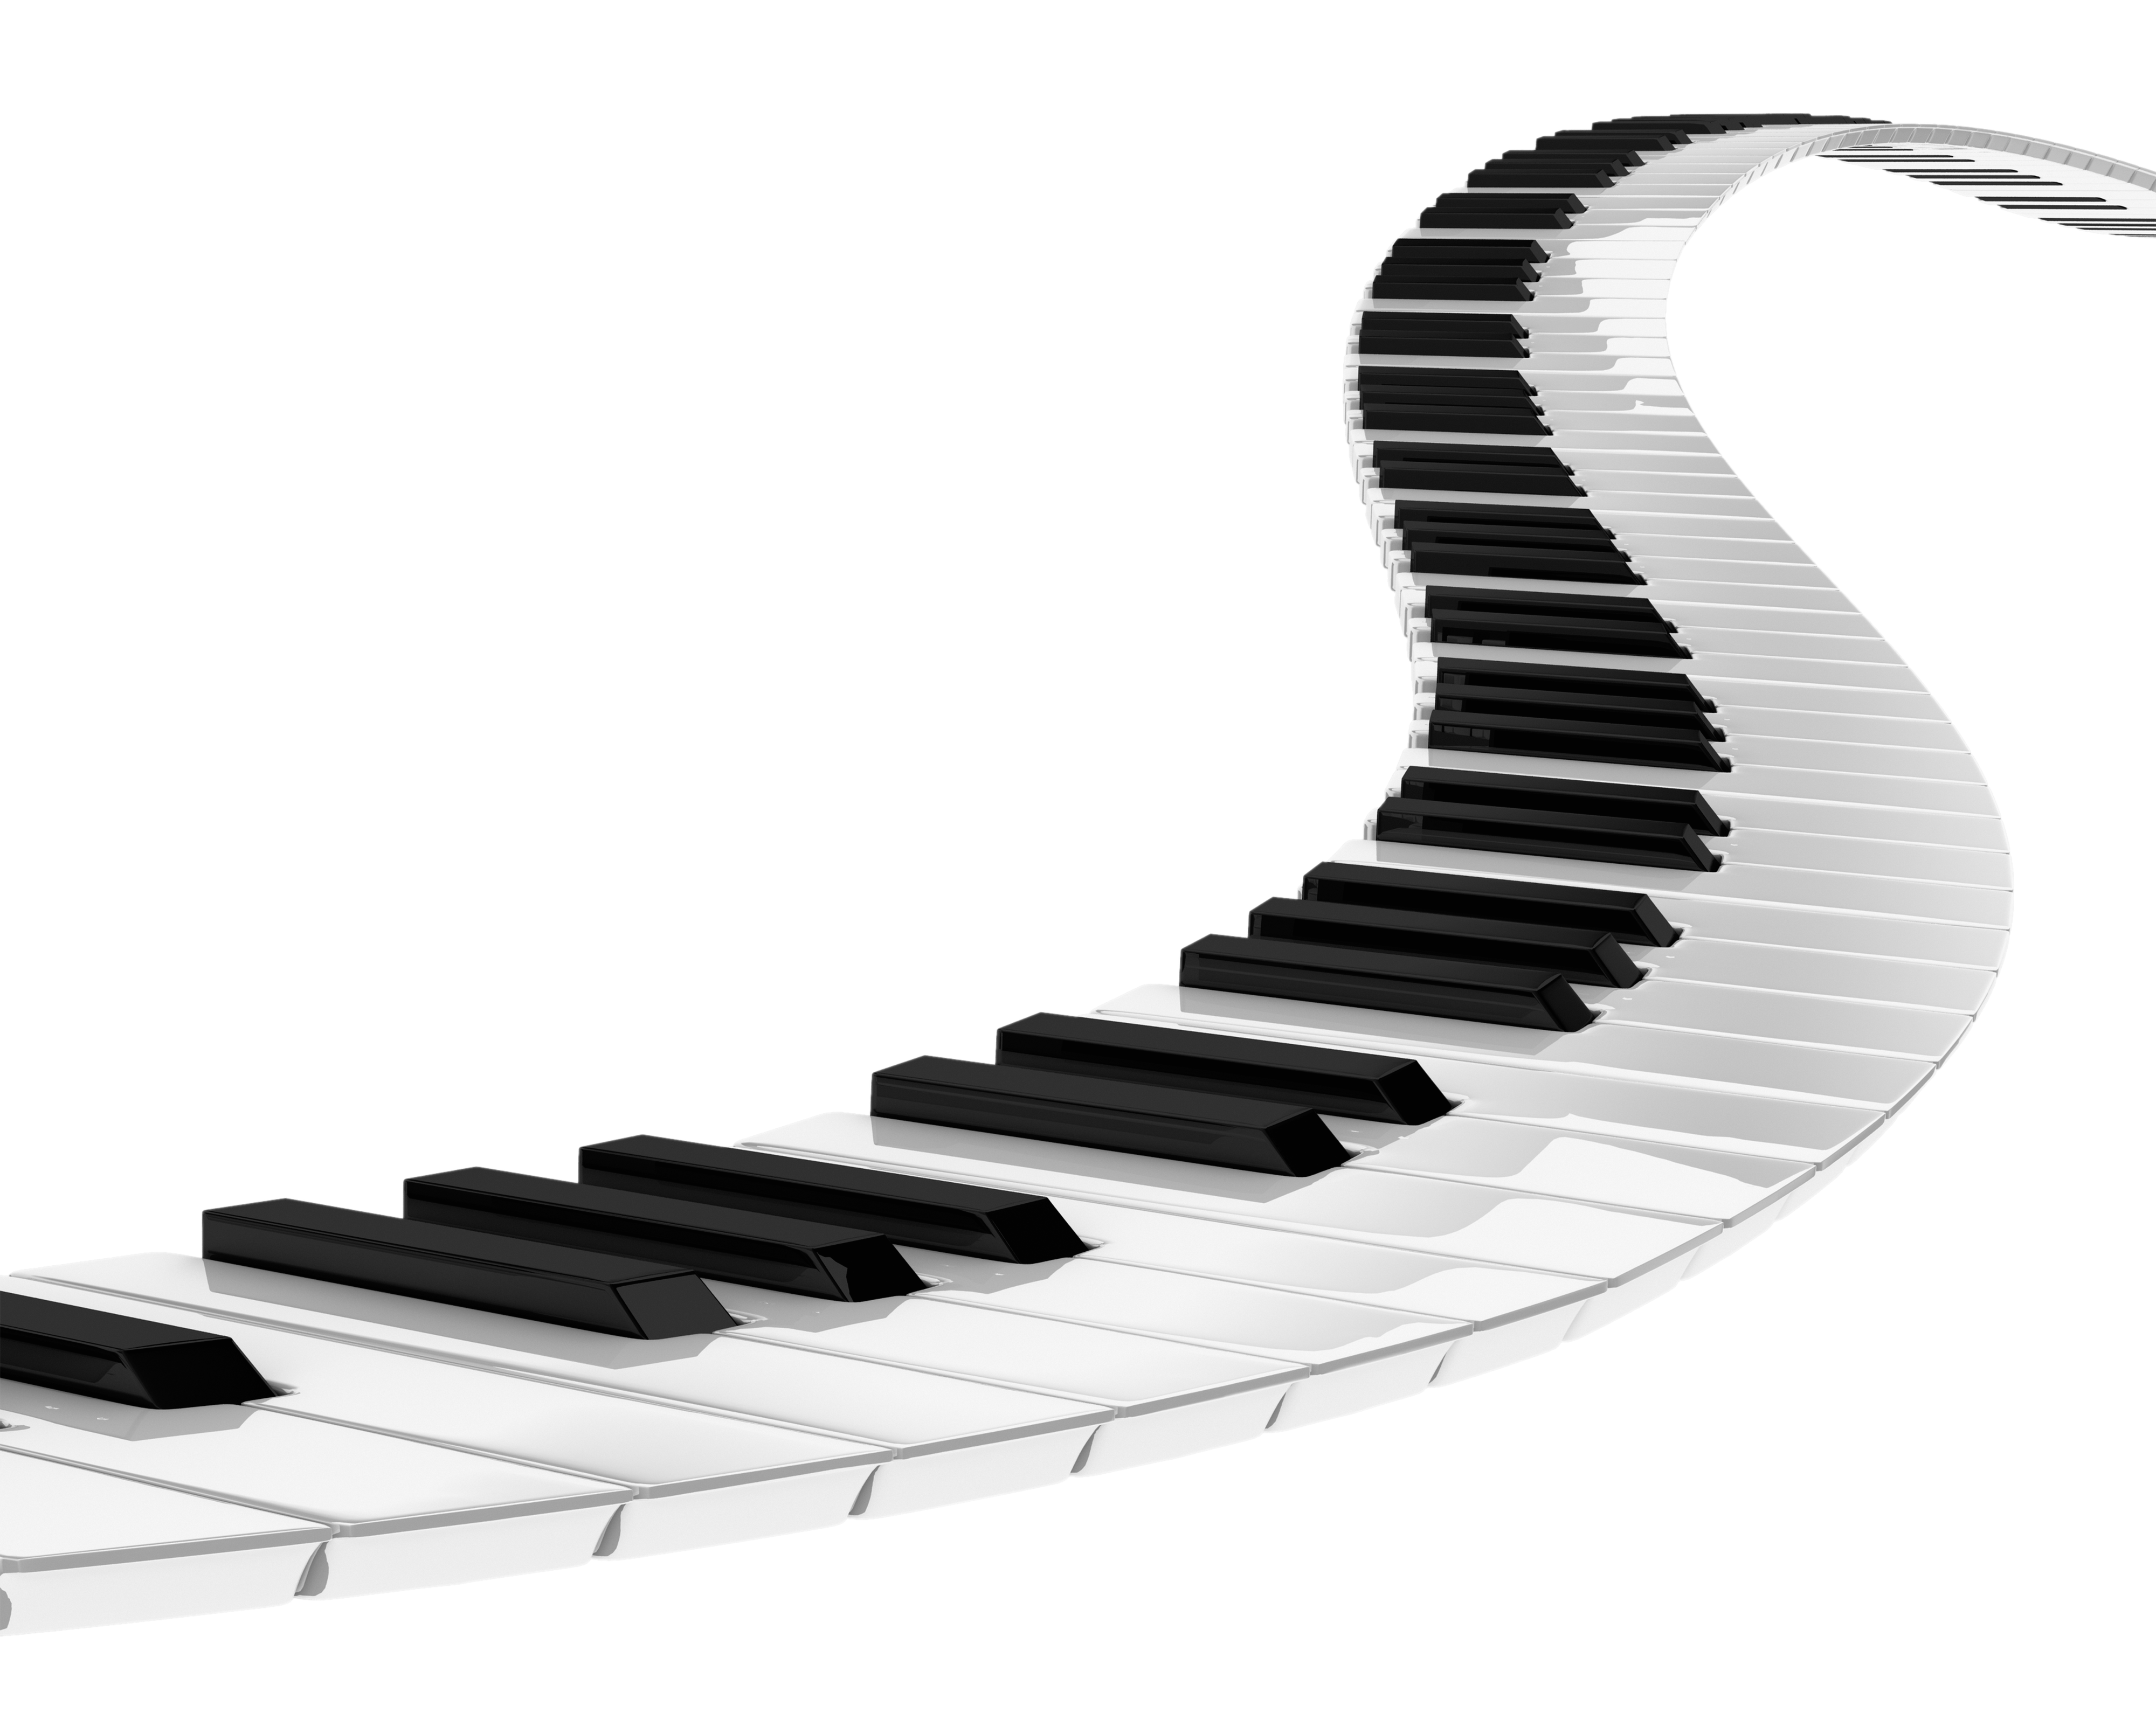 Music Keyboard Png - Free Music Keyboard Png, Download Free Clip Art, Free Clip Art on ...